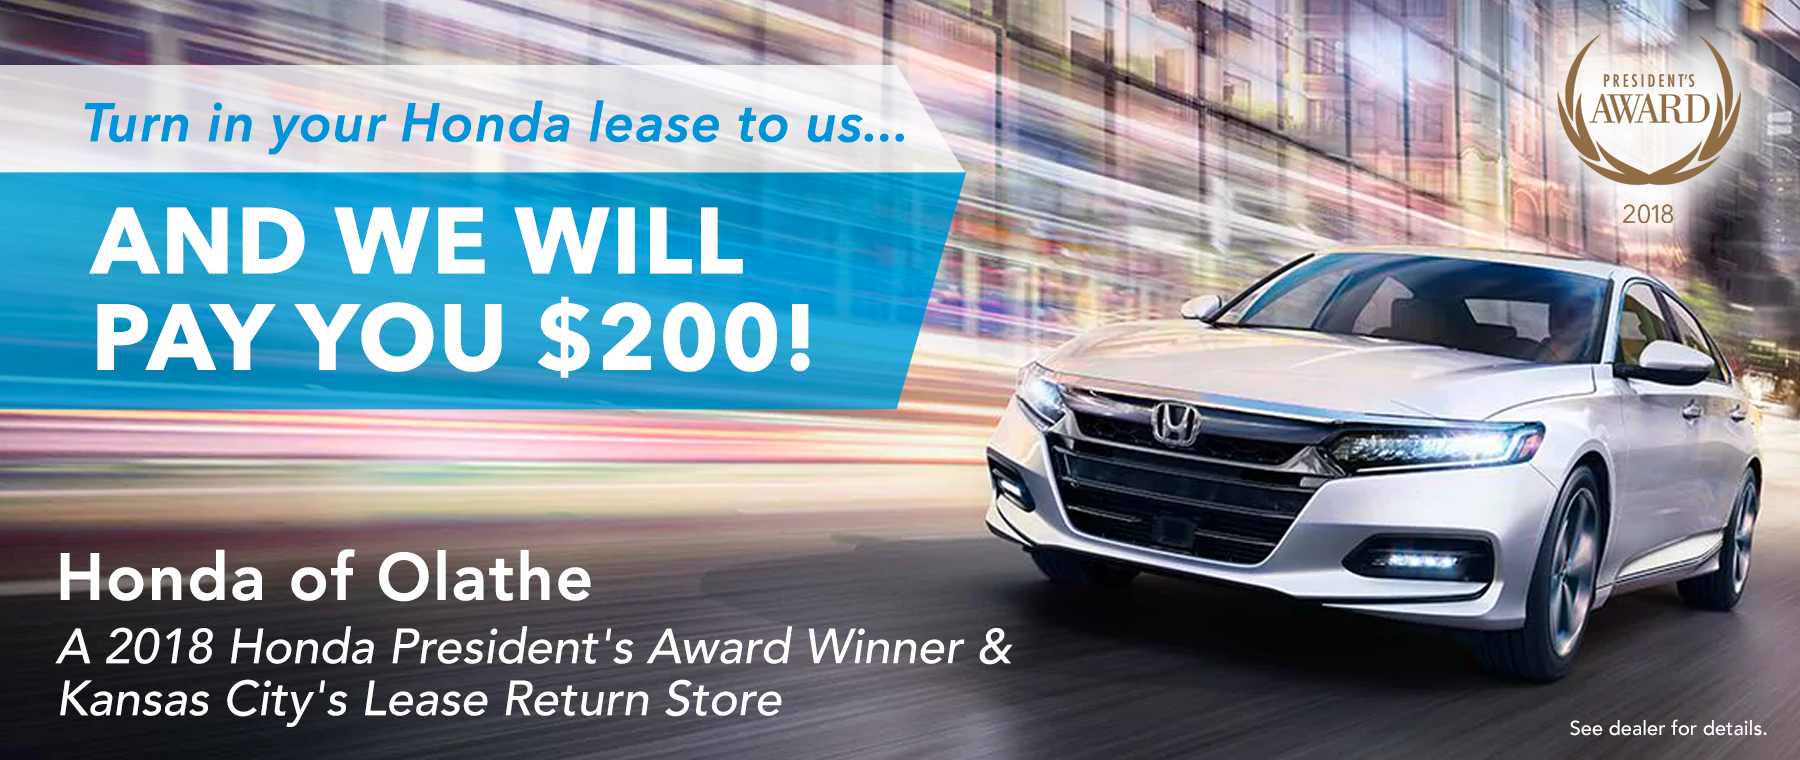 Honda of Olathe Lease Return